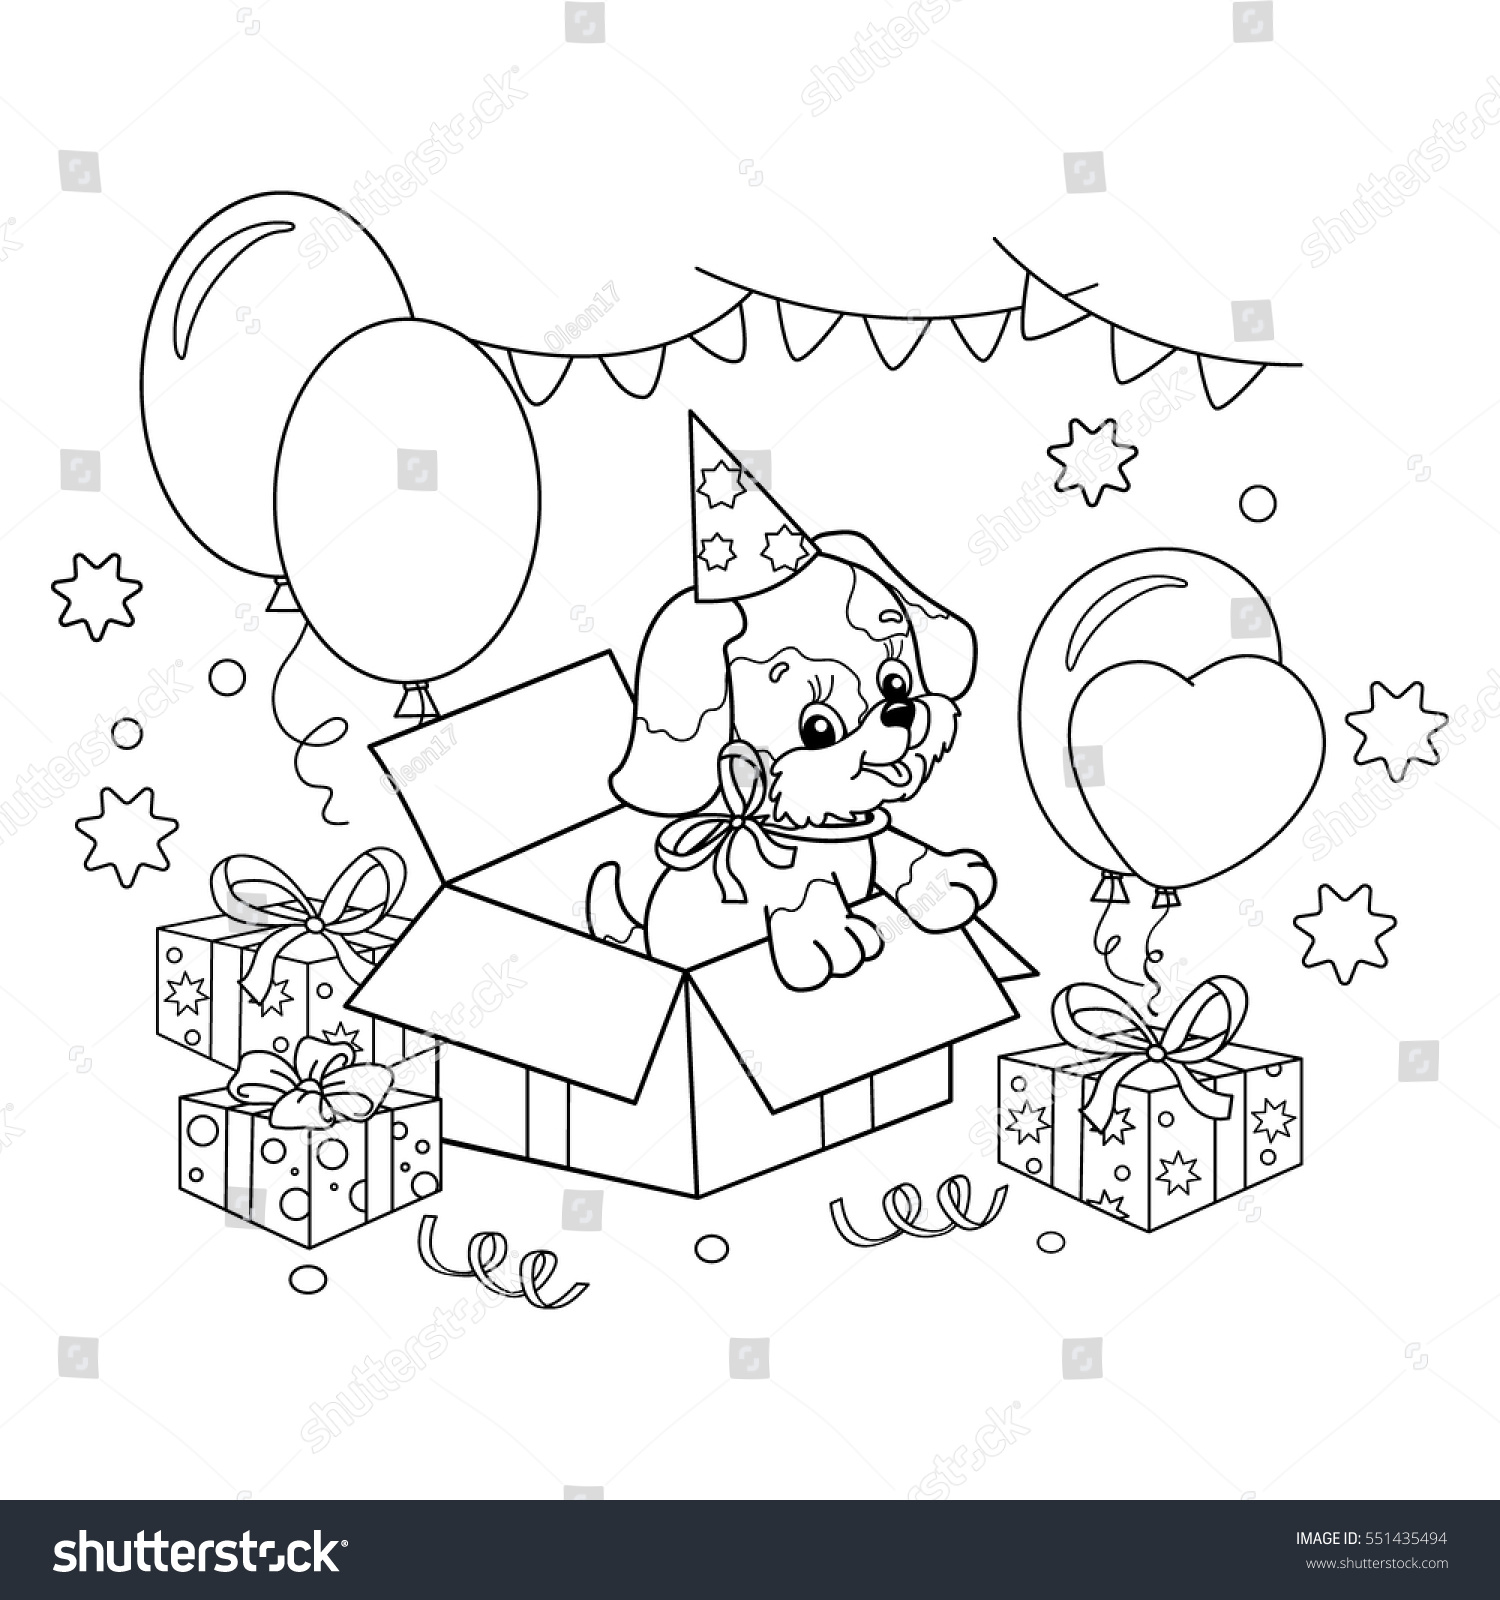 Coloring Page Outline Cute Puppy Cartoon Stock Vector (Royalty Free ...